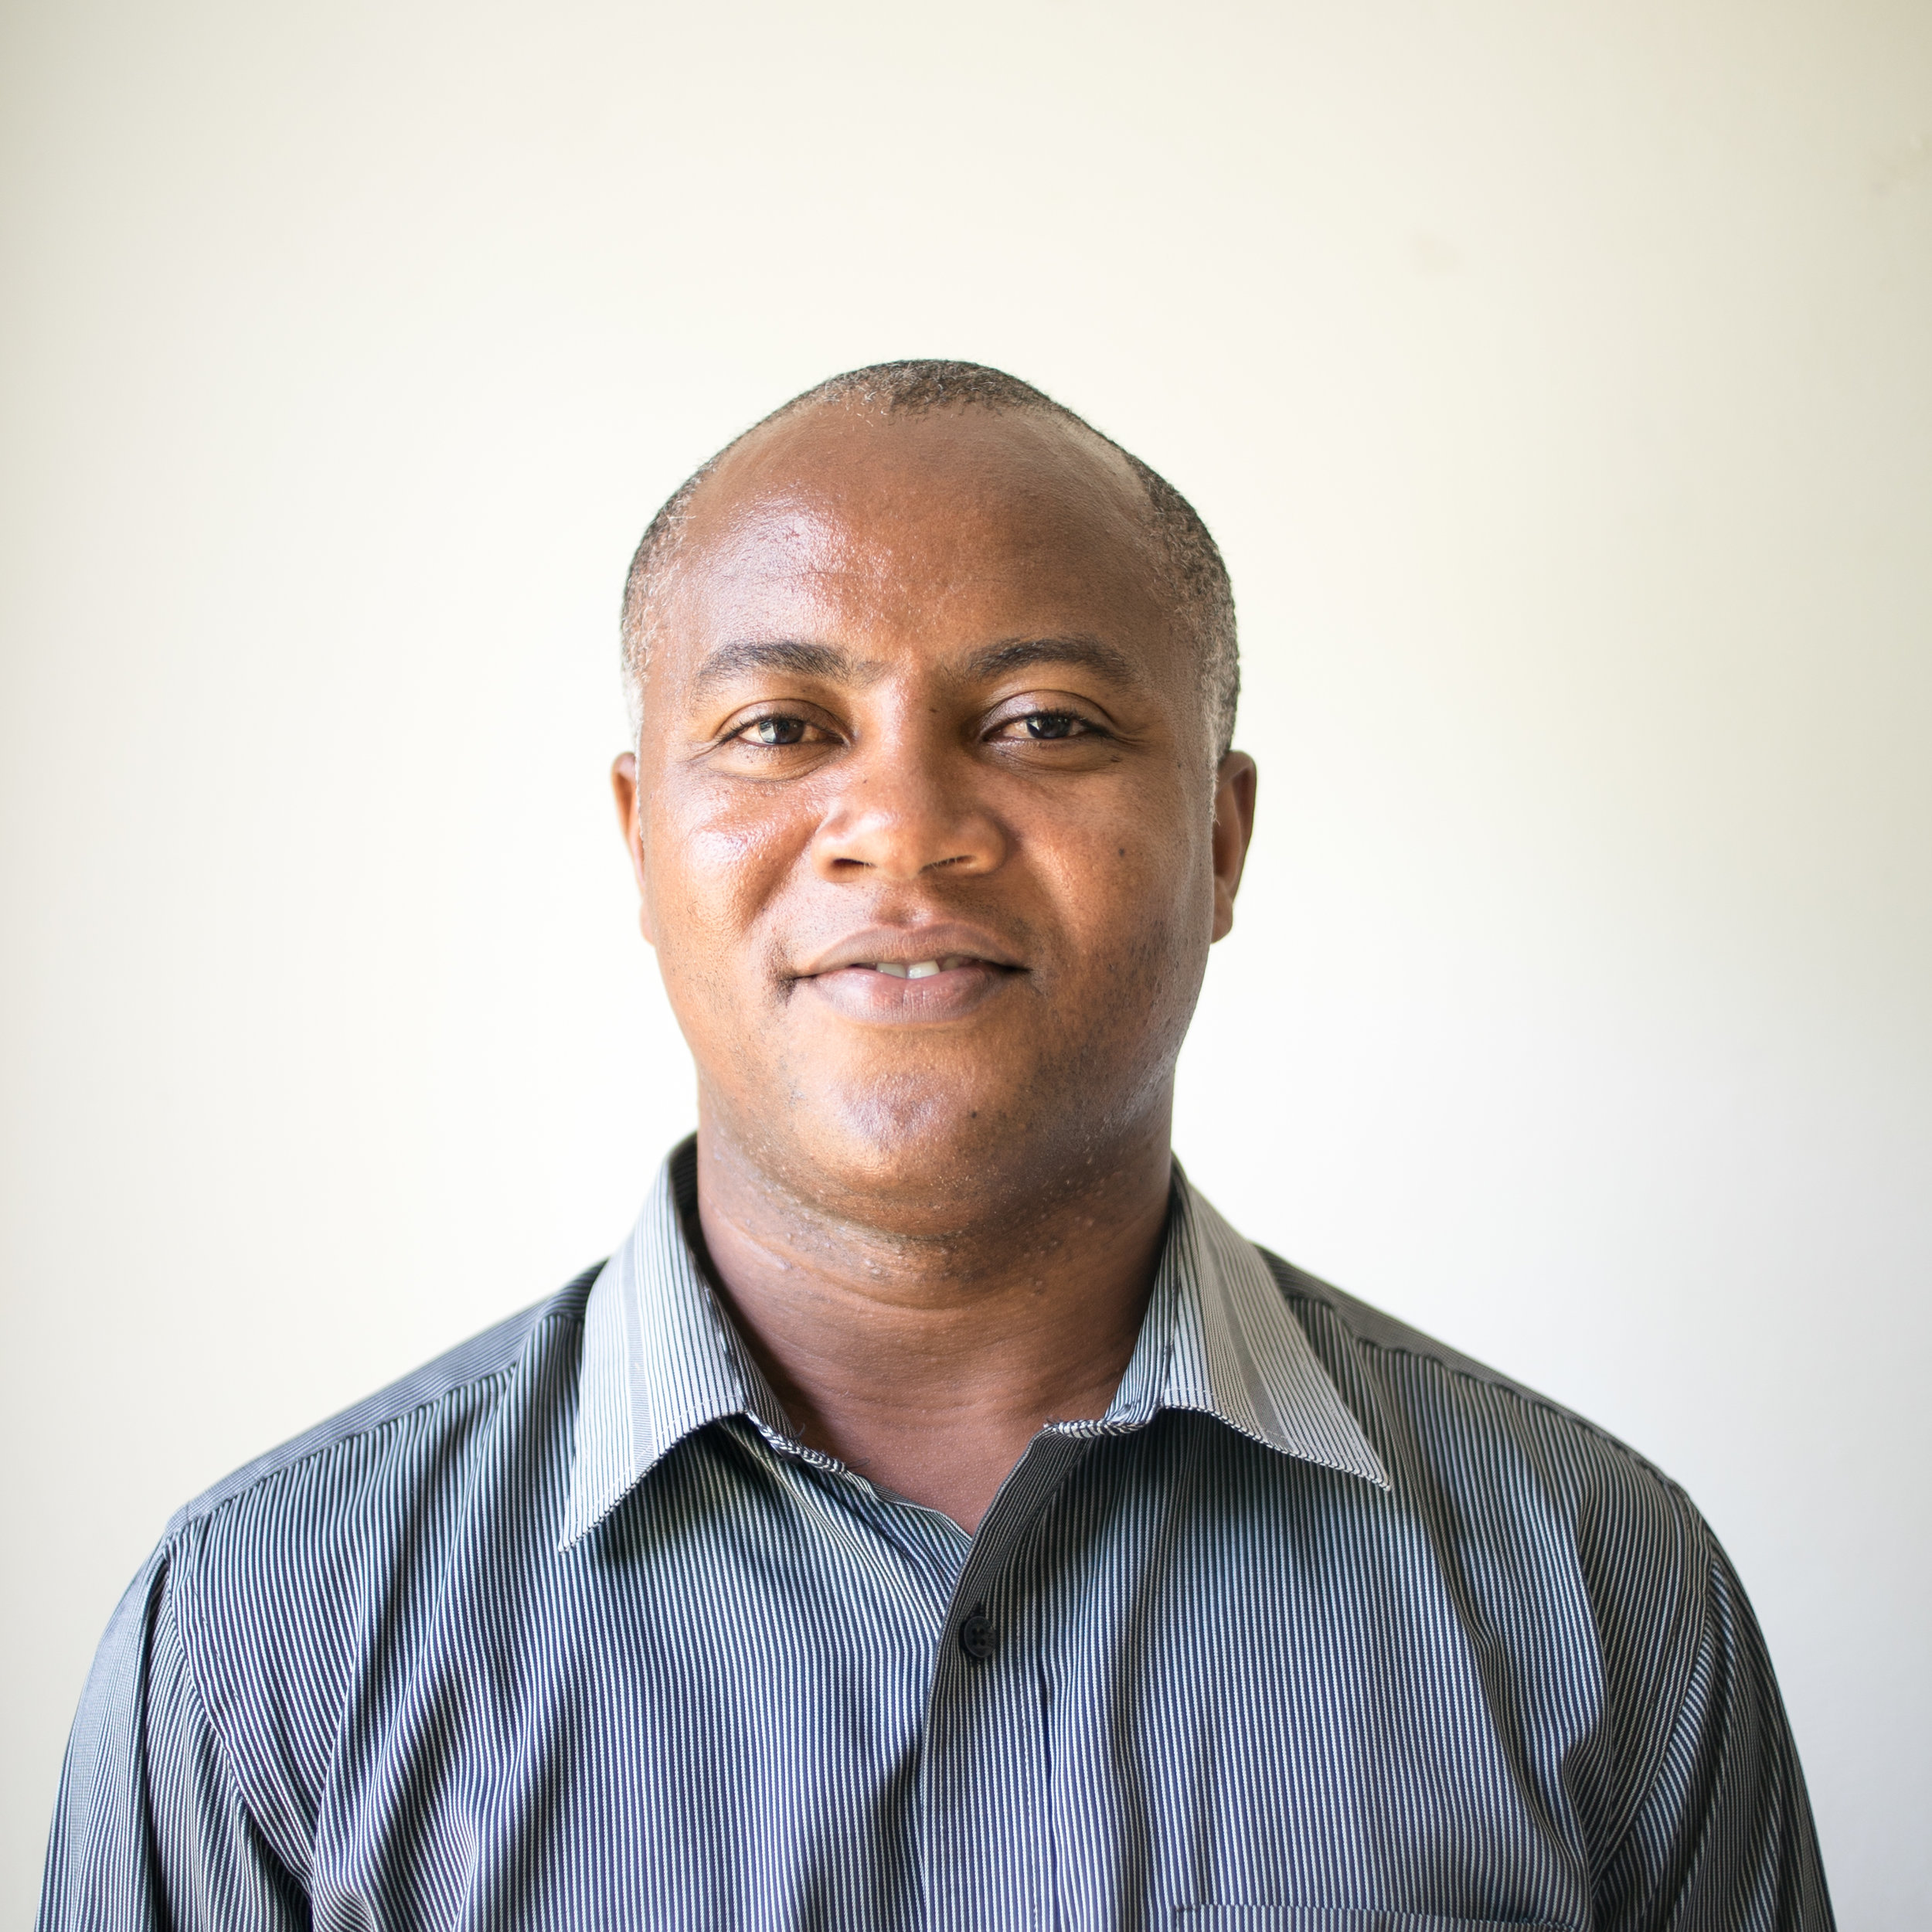 """I work in education to help improve the quality of the education system in the country."""